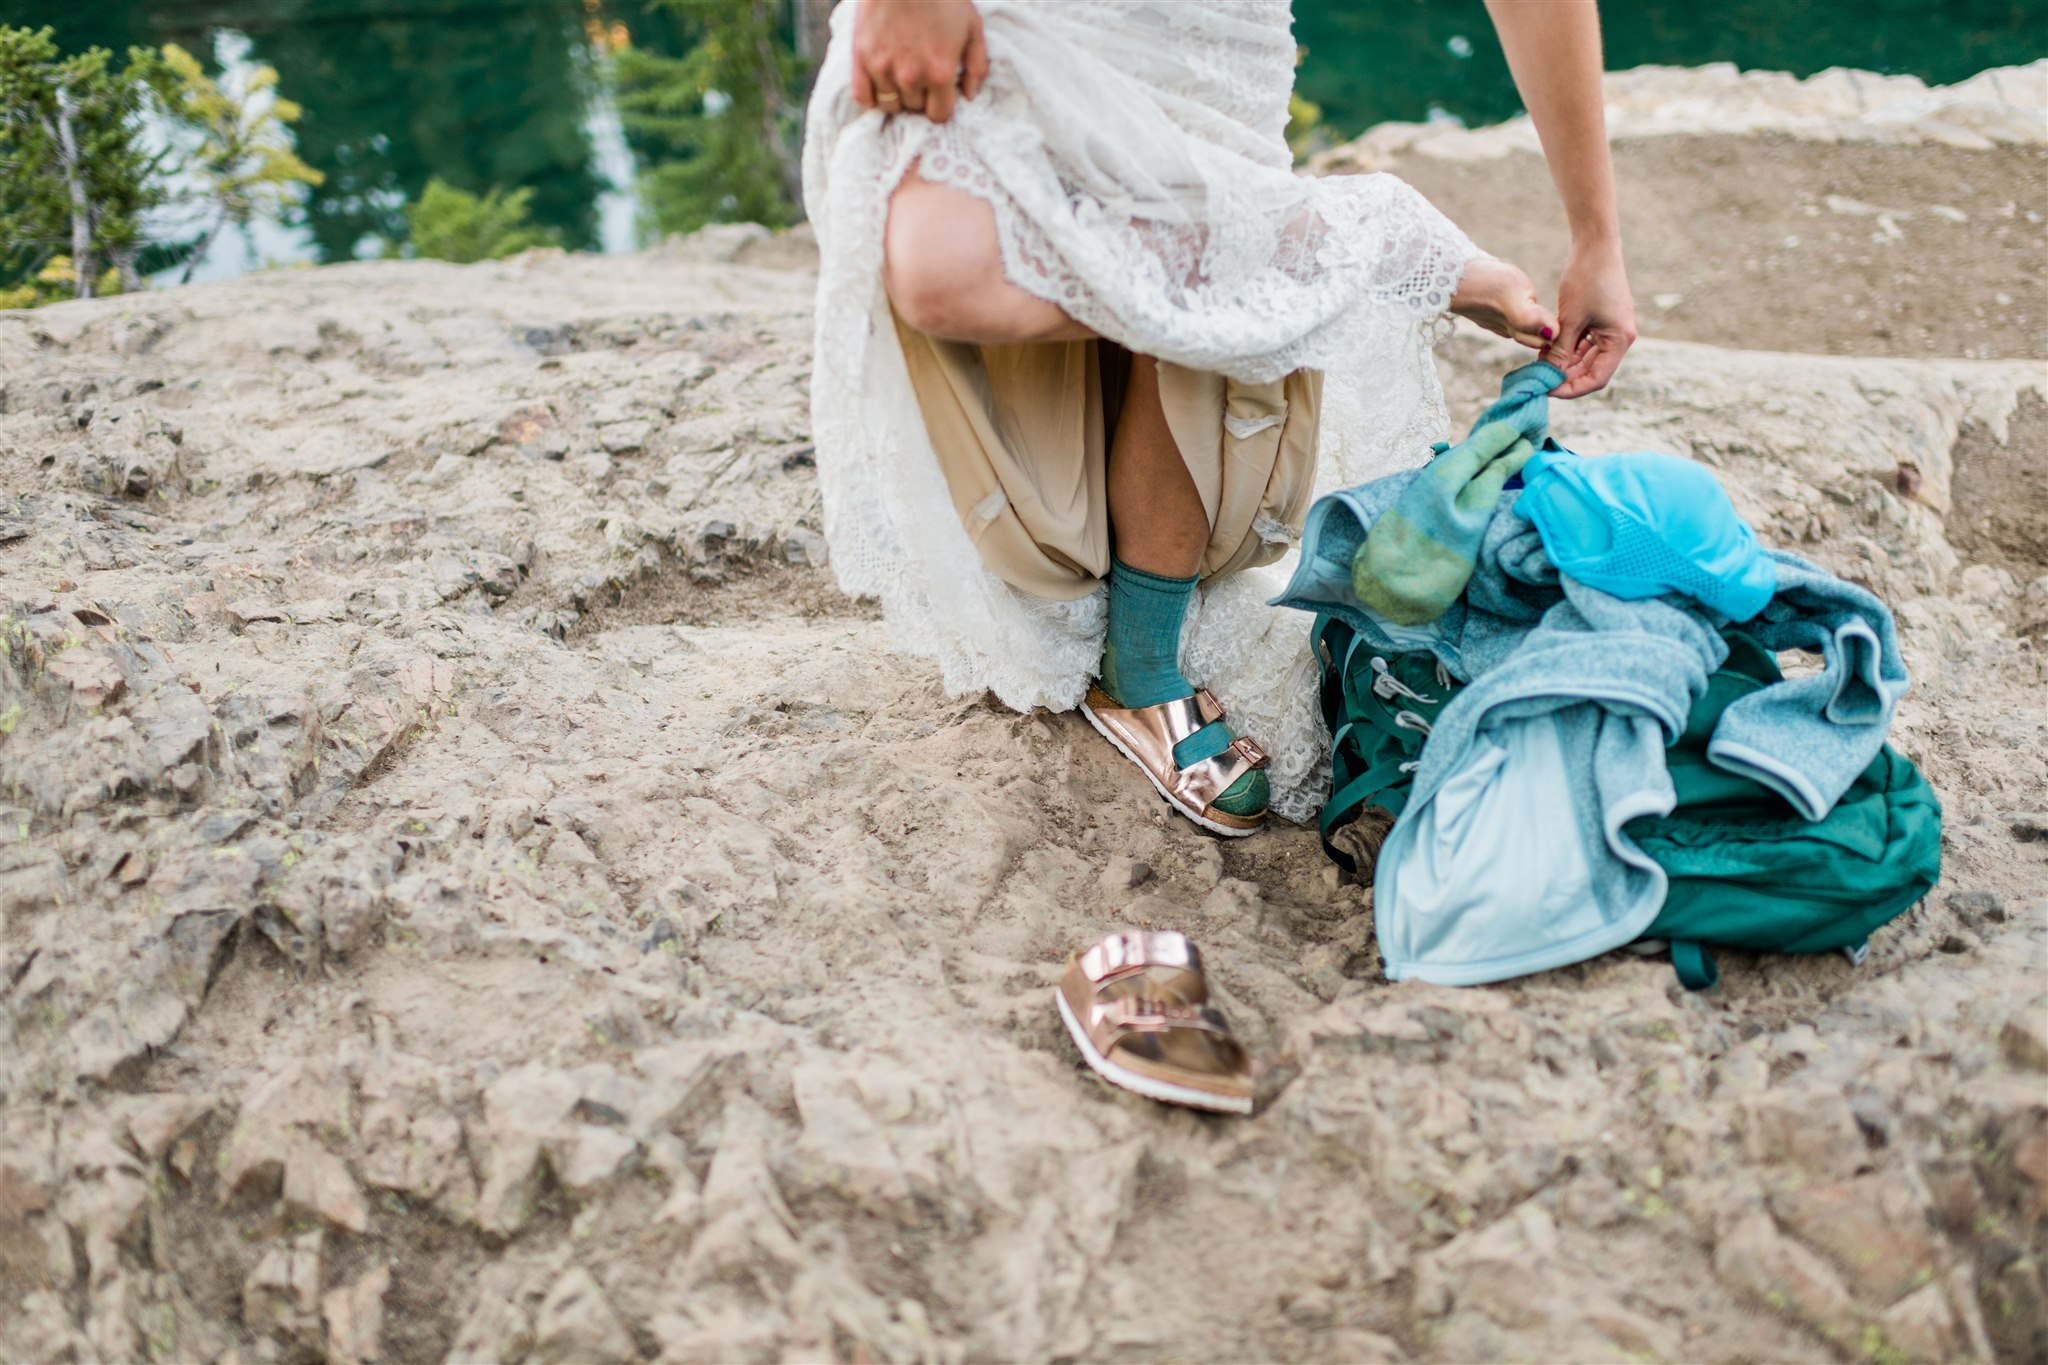 North Cascades adventure wedding, hiking and backpacking elopement. Image by Forthright Photo.